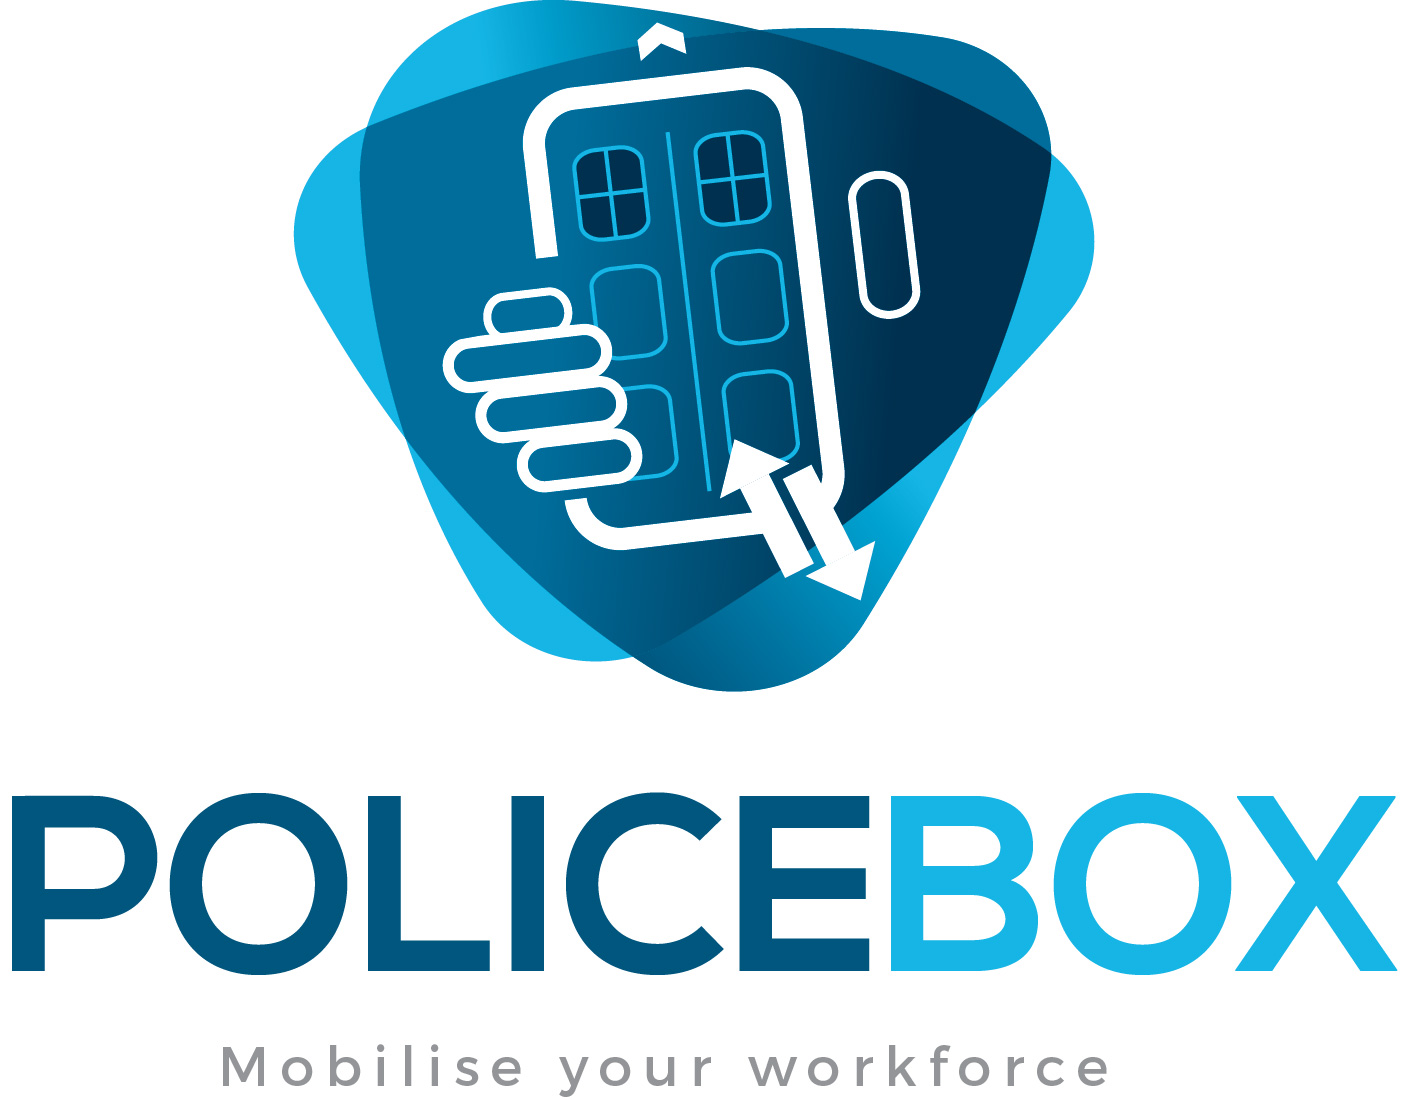 Security and Policing 2020 - 2019 Exhibitors Archive - Security and